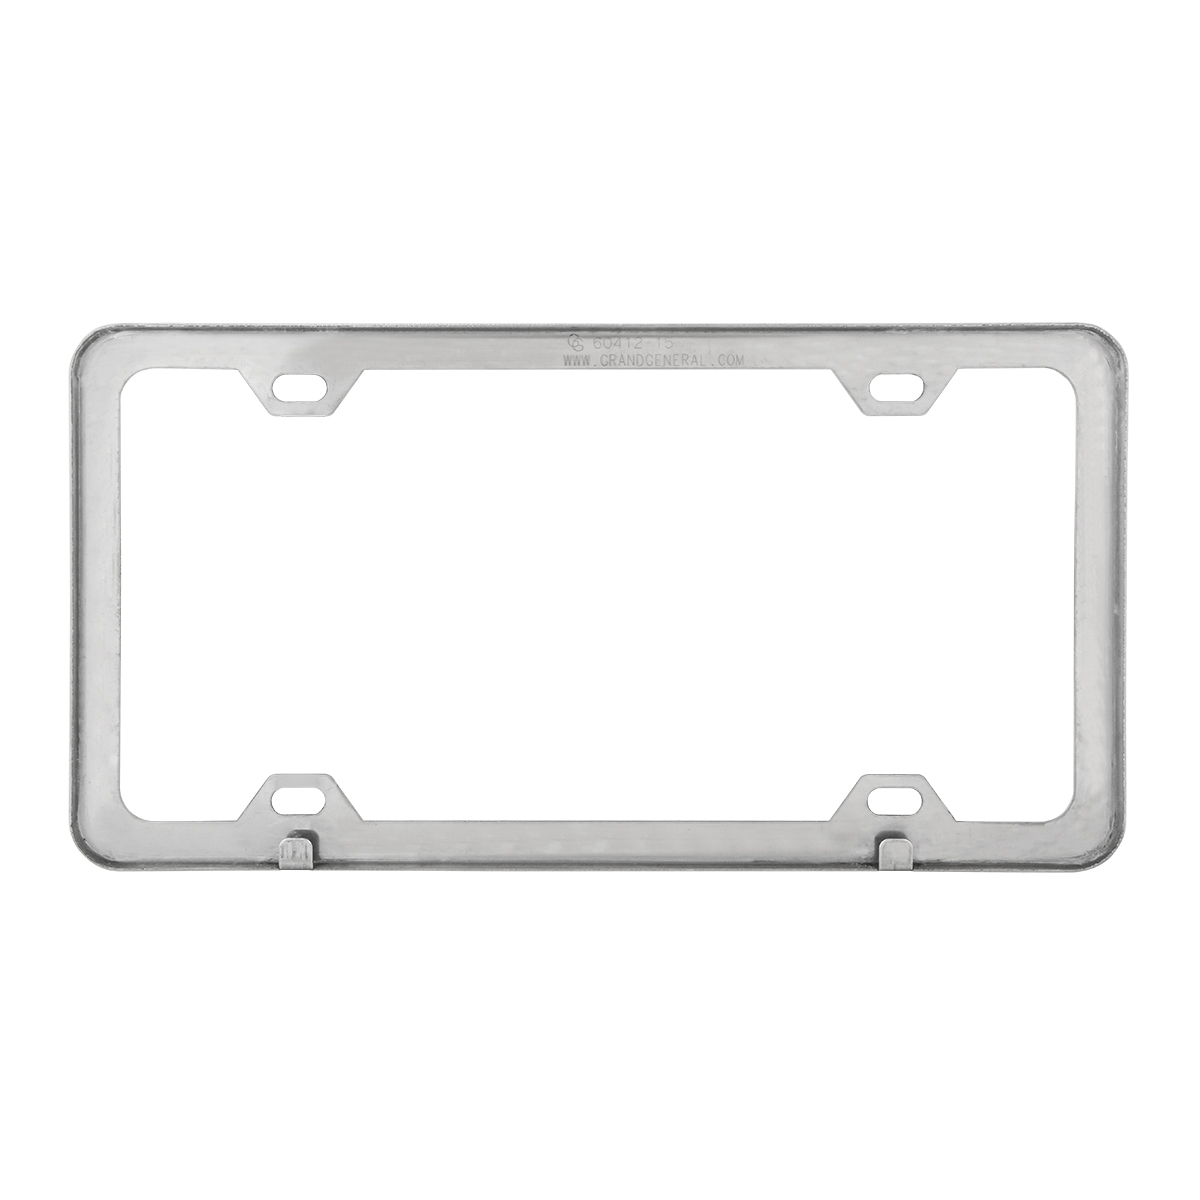 60413 Plain Polished Stainless Steel 4 Hole License Plate Frame - Back View